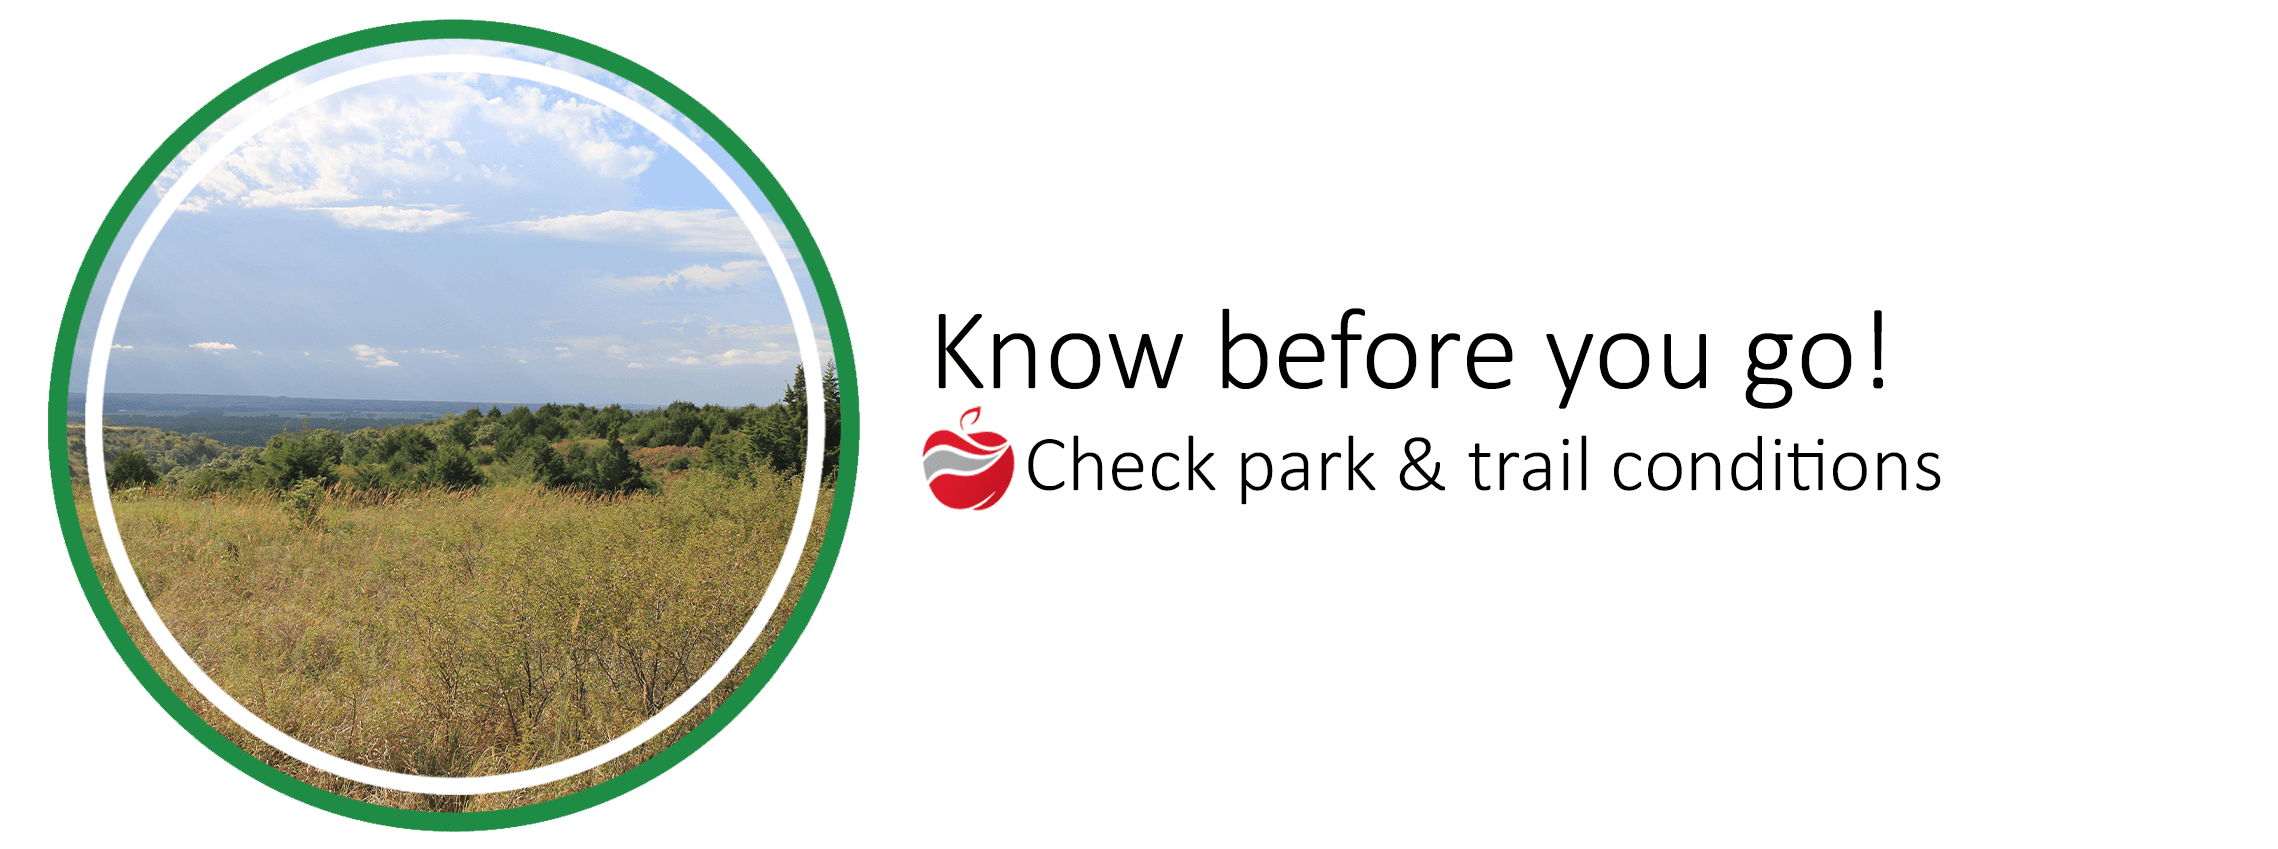 Check park & trail conditions